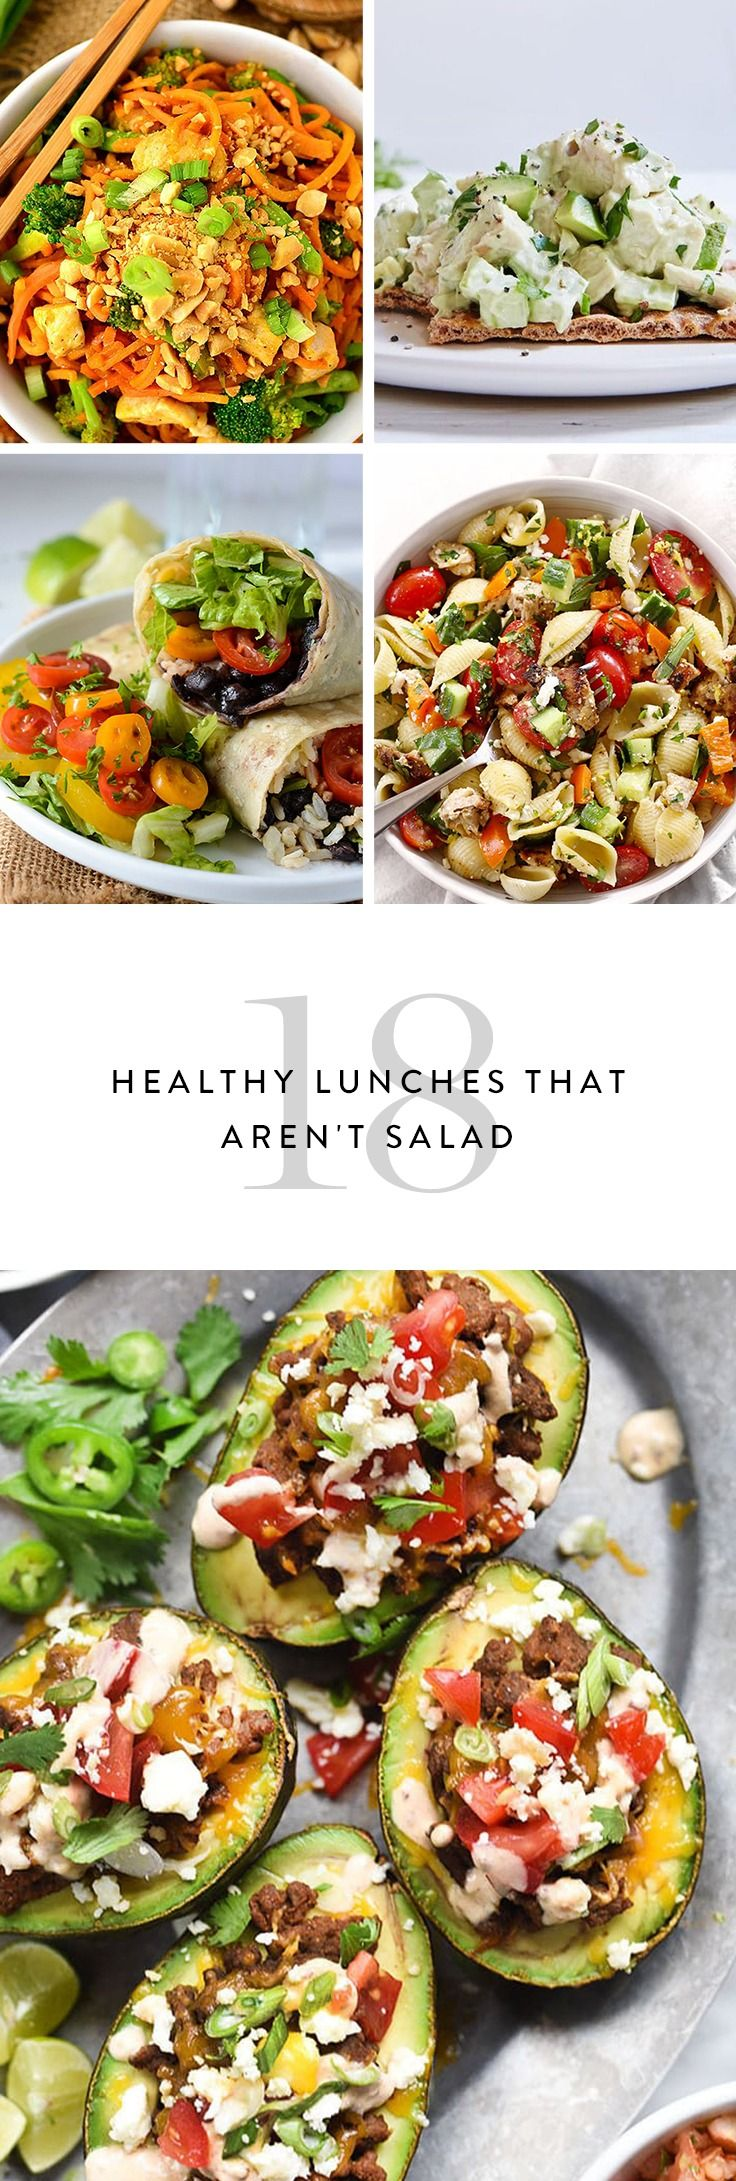 5 Healthy Snacks That Are Perfect for Eating at Work ...  Light Snacks For Work